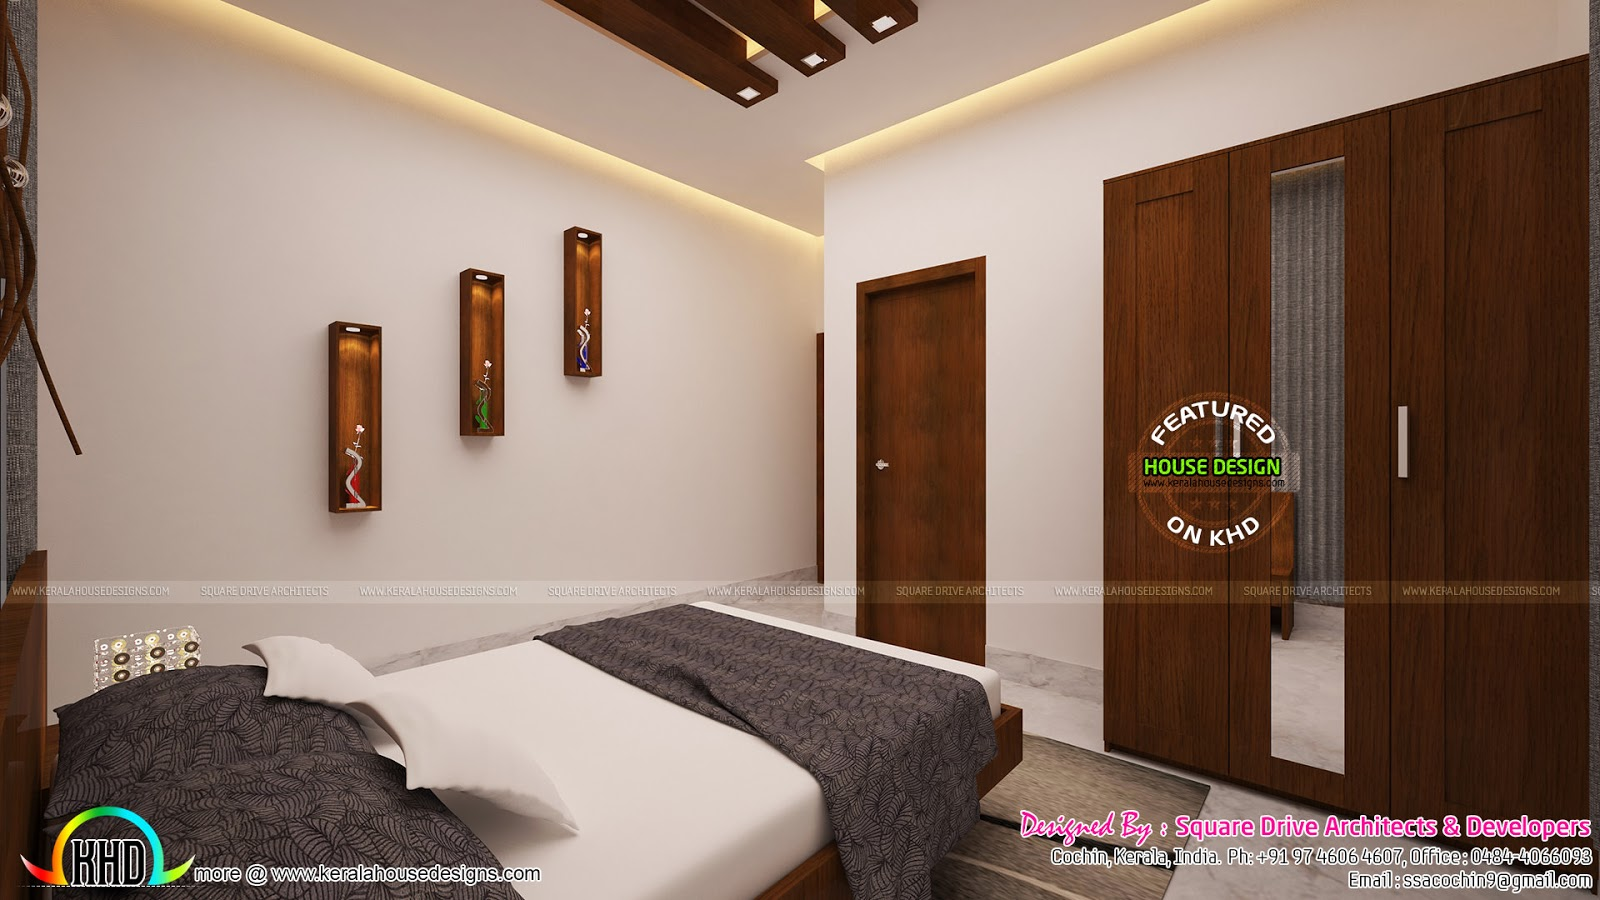 Bedrooms interior design kerala kerala home design and for Bedroom designs in kerala